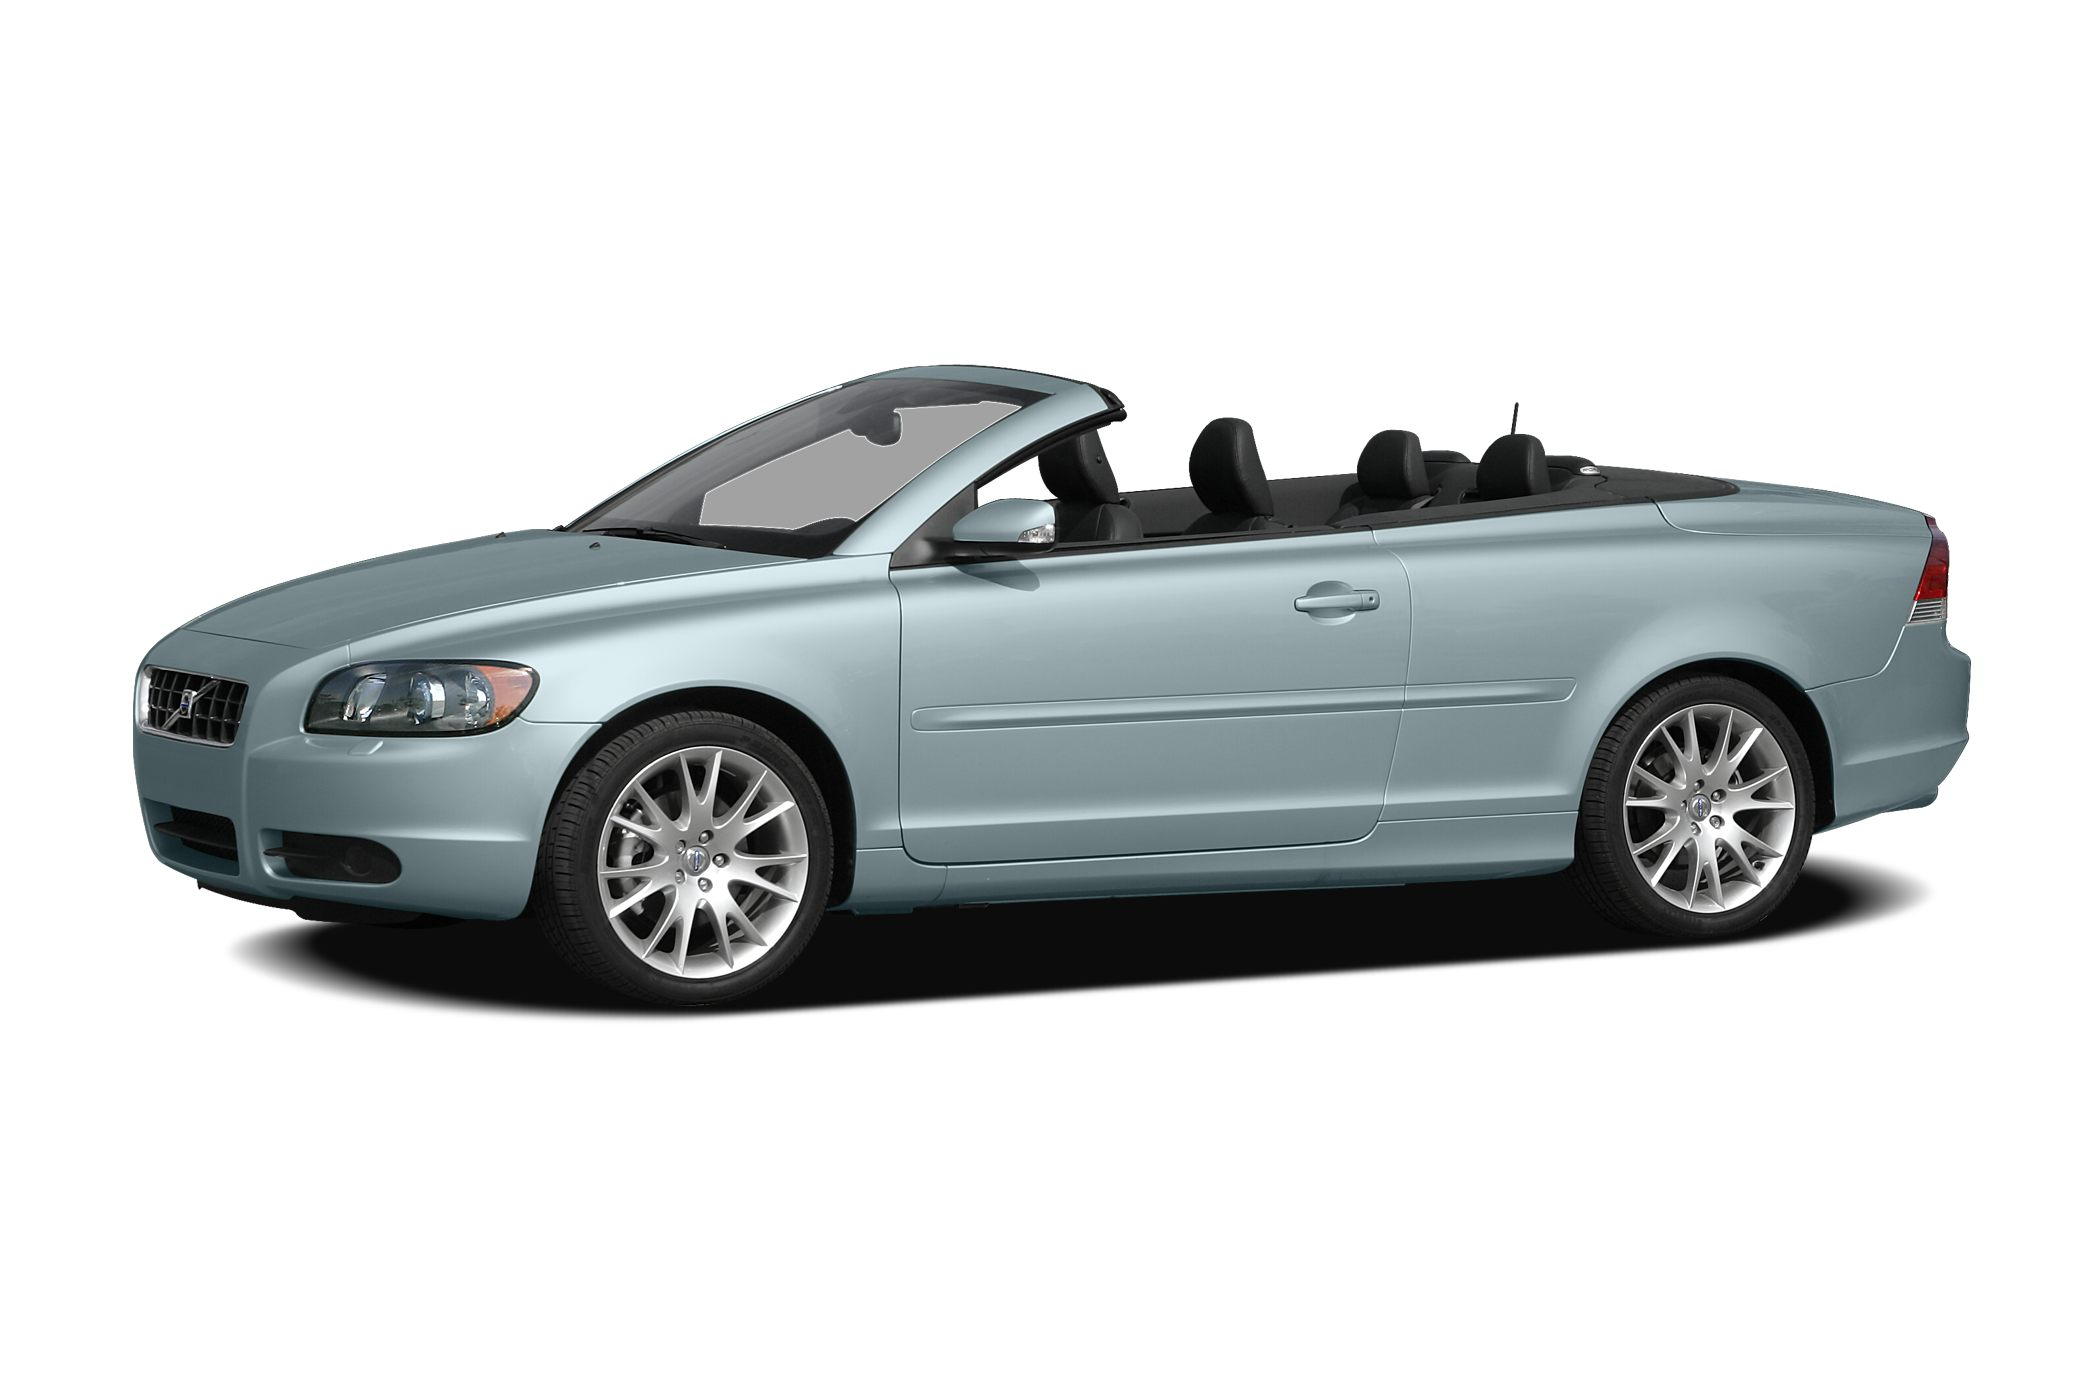 2009 Volvo C70 T5 Convertible for sale in Pittsburgh for $0 with 72,551 miles